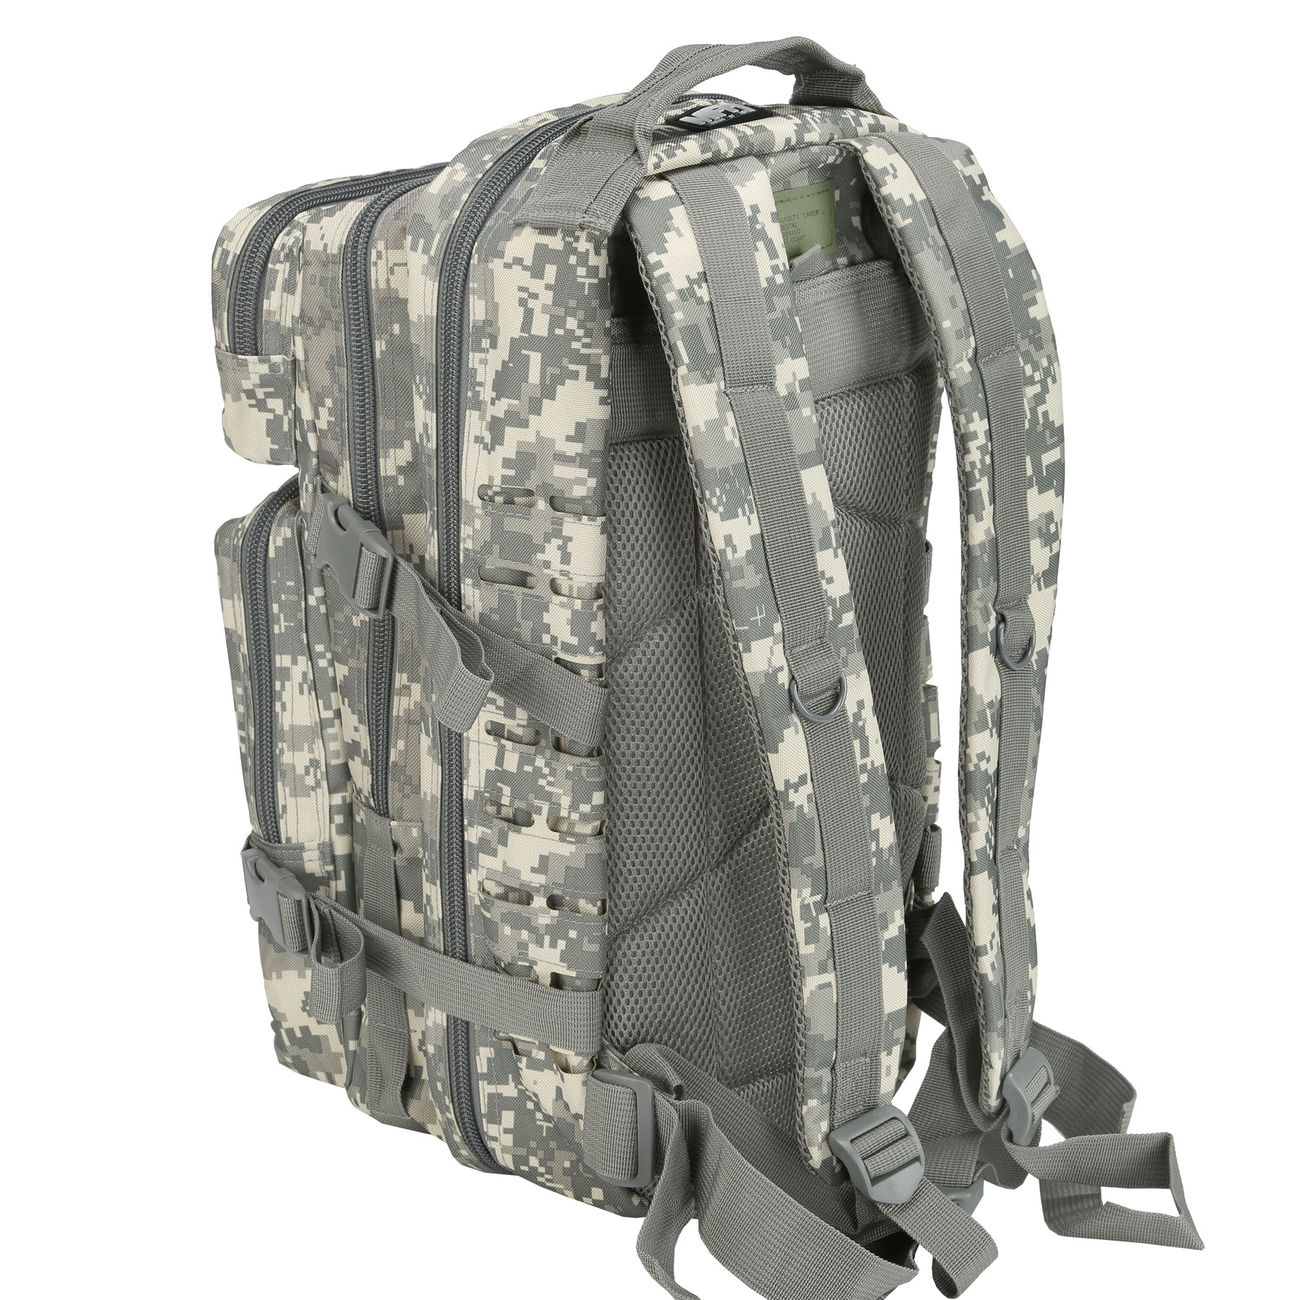 MFH Rucksack US Assault I Laser 30L AT-digital 3